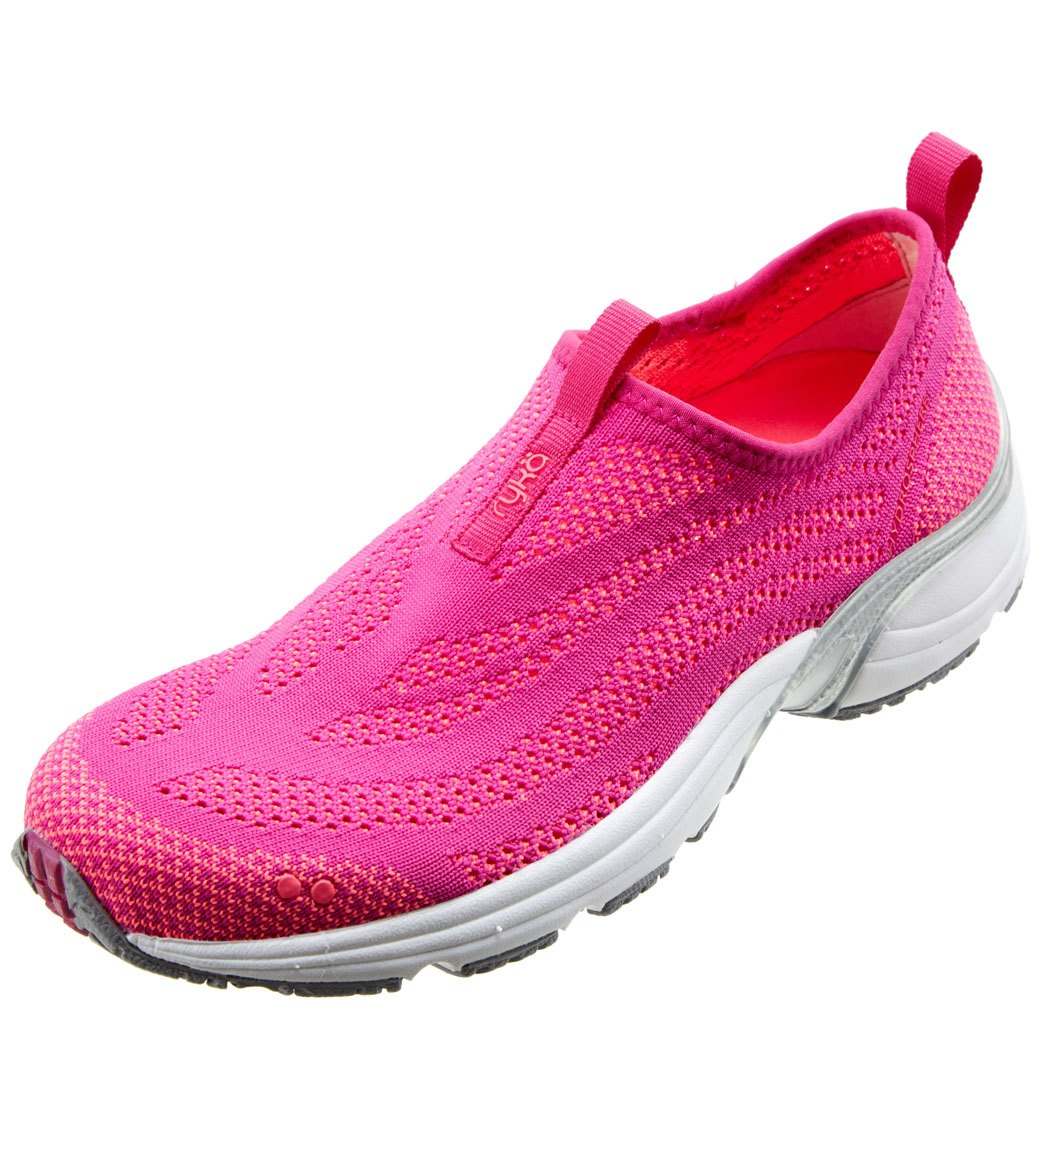 5f2f507c4b84 Ryka Women s Hydrosphere Water Shoe at SwimOutlet.com - Free Shipping